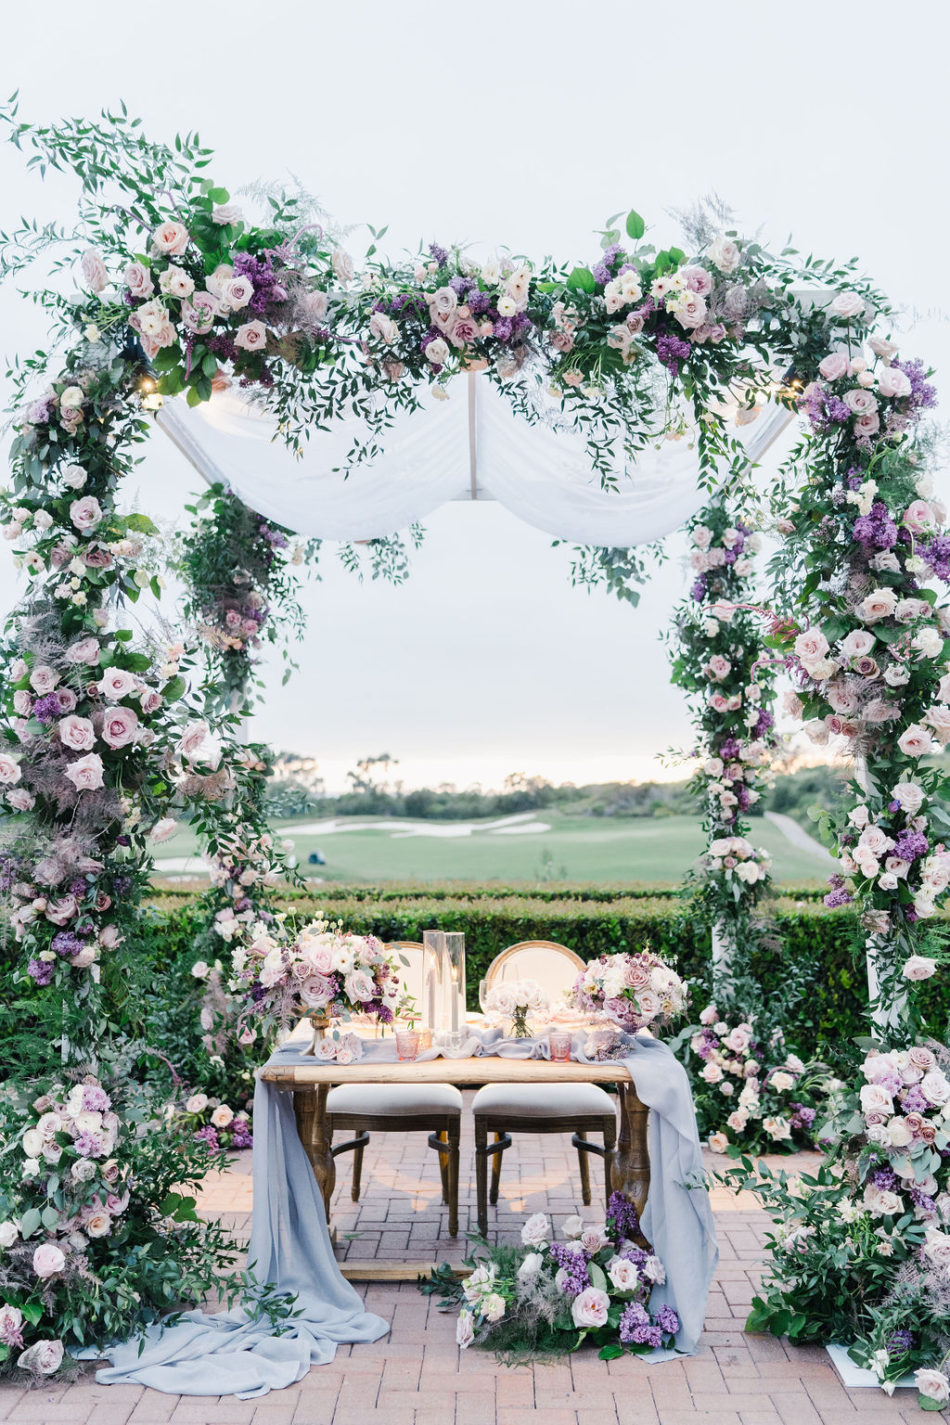 floral design, florist, wedding florist, wedding flowers, orange county weddings, orange county wedding florist, orange county florist, orange county floral design, flowers by cina, purple sweetheart table, purple floral arch, purple wedding blooms